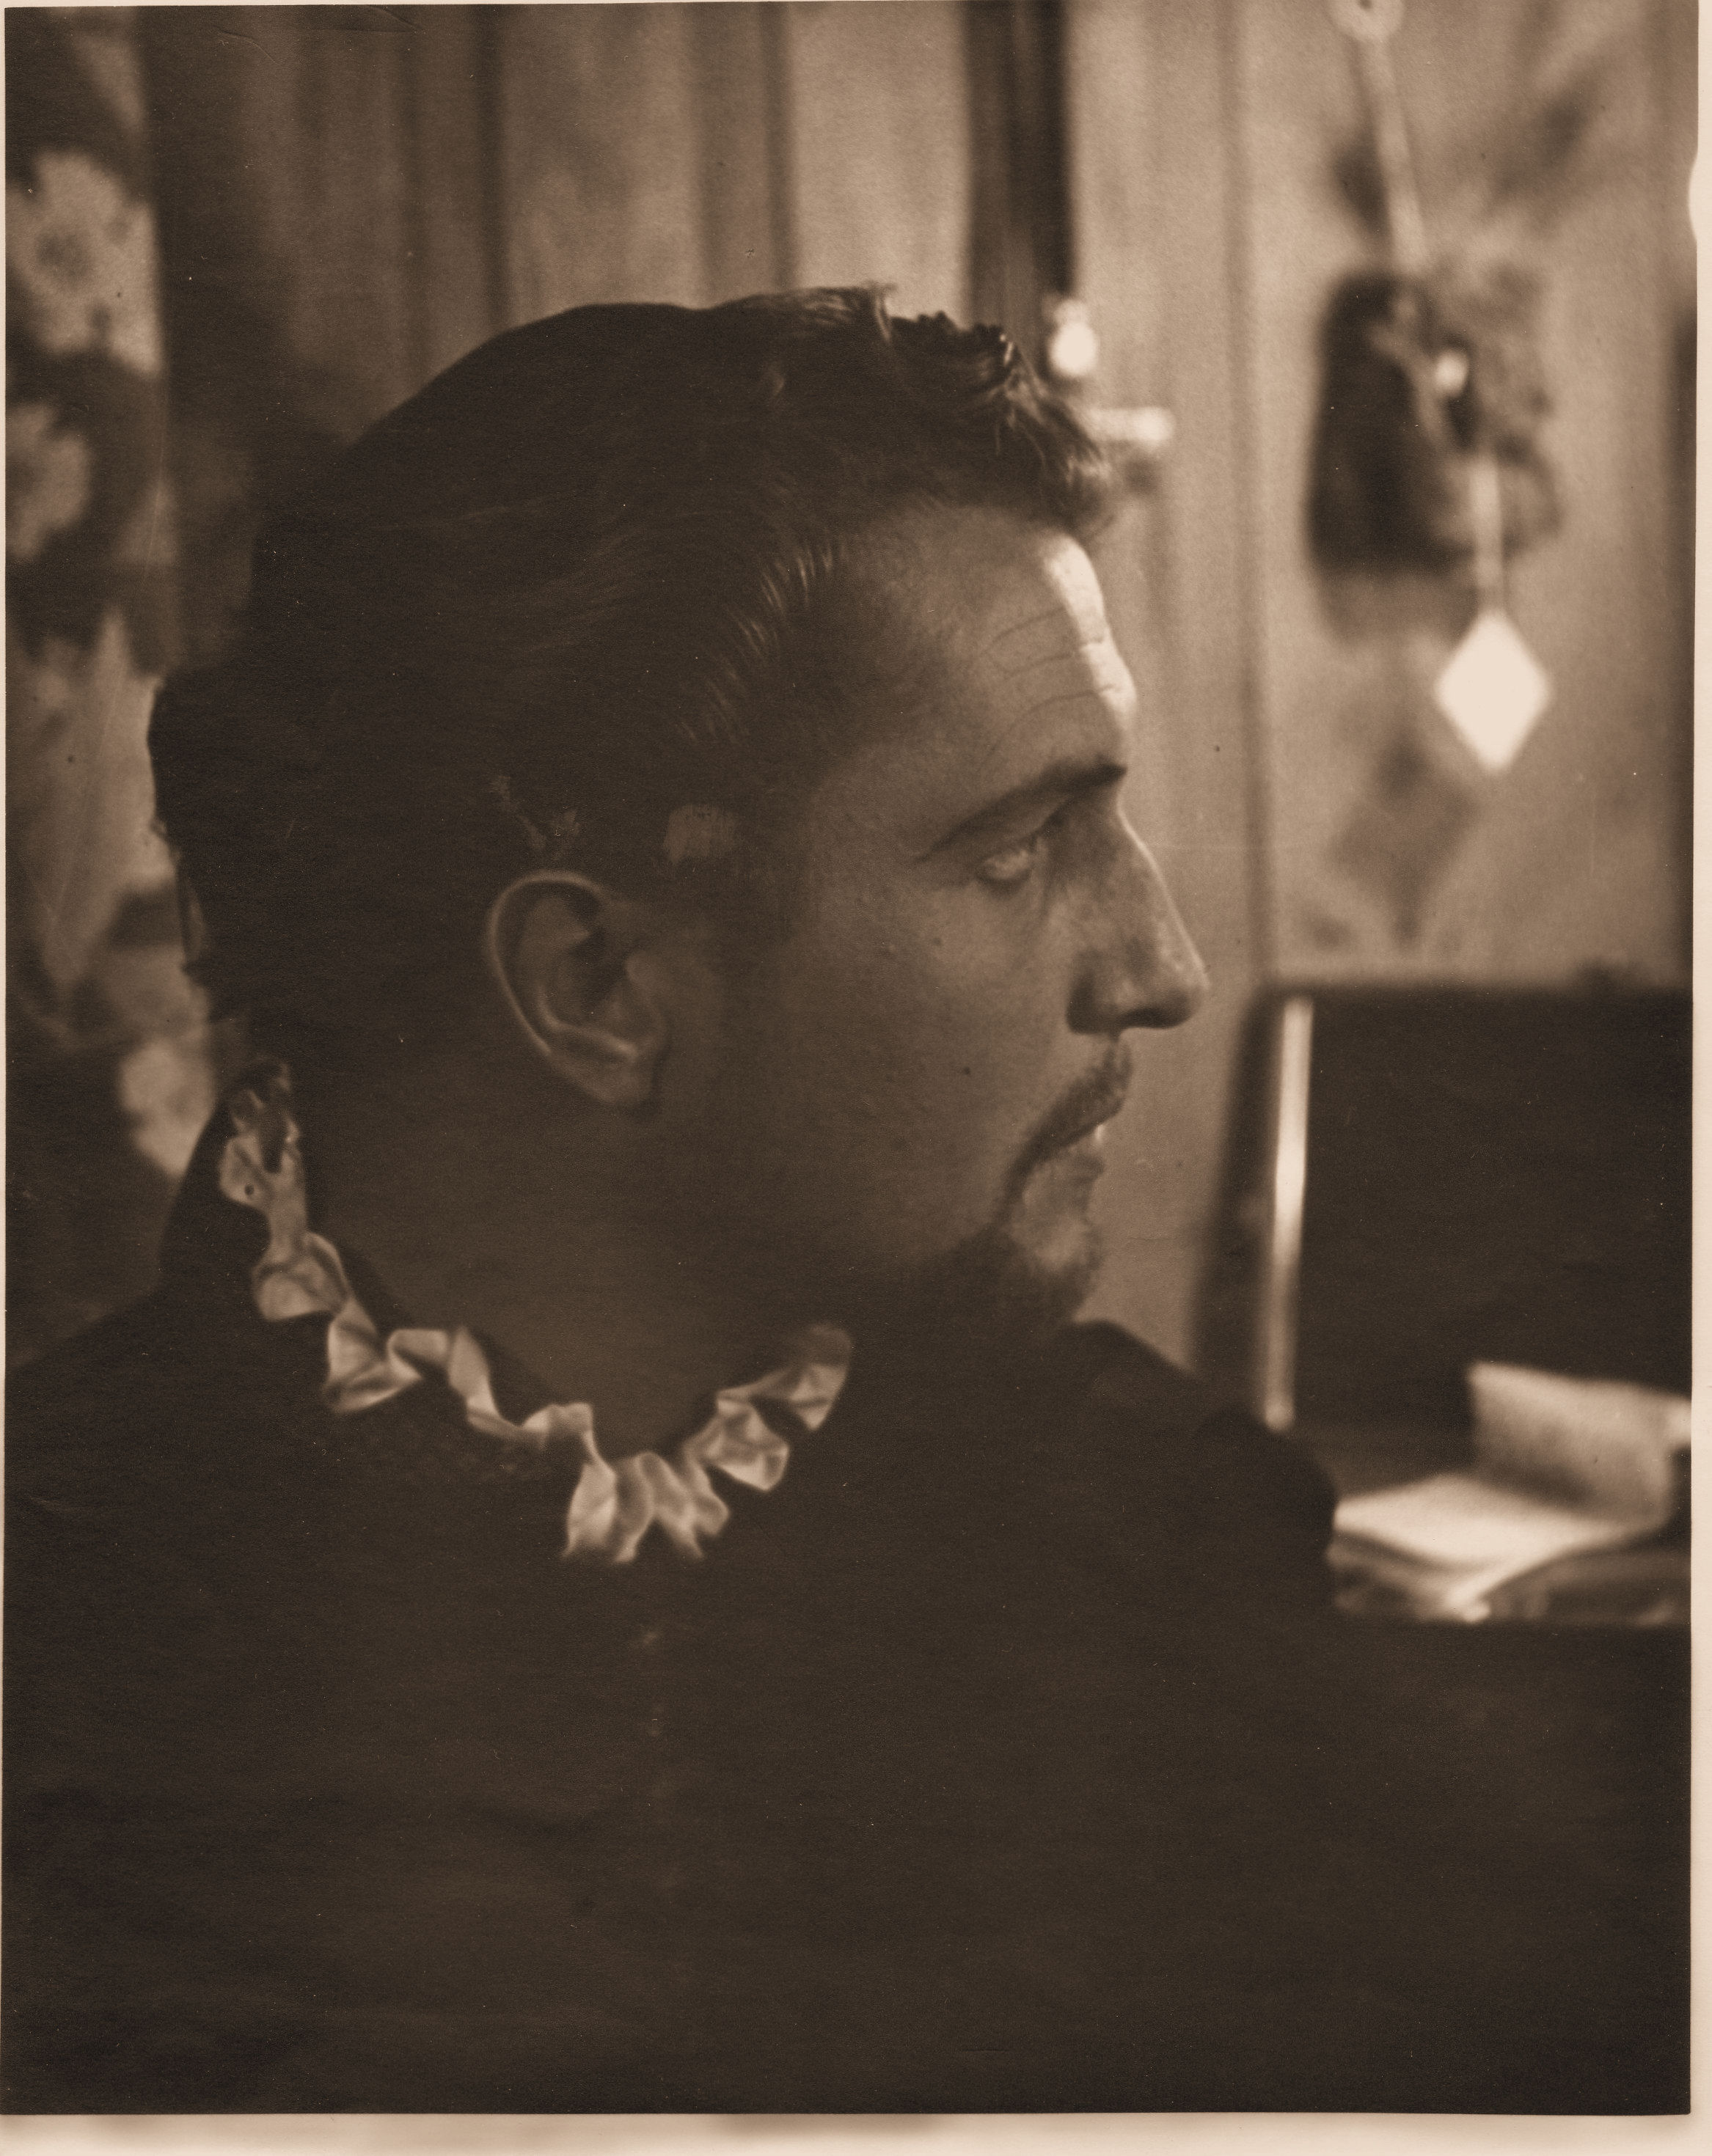 Vincent Price in 1940 Lakewood Theater Dressing Room